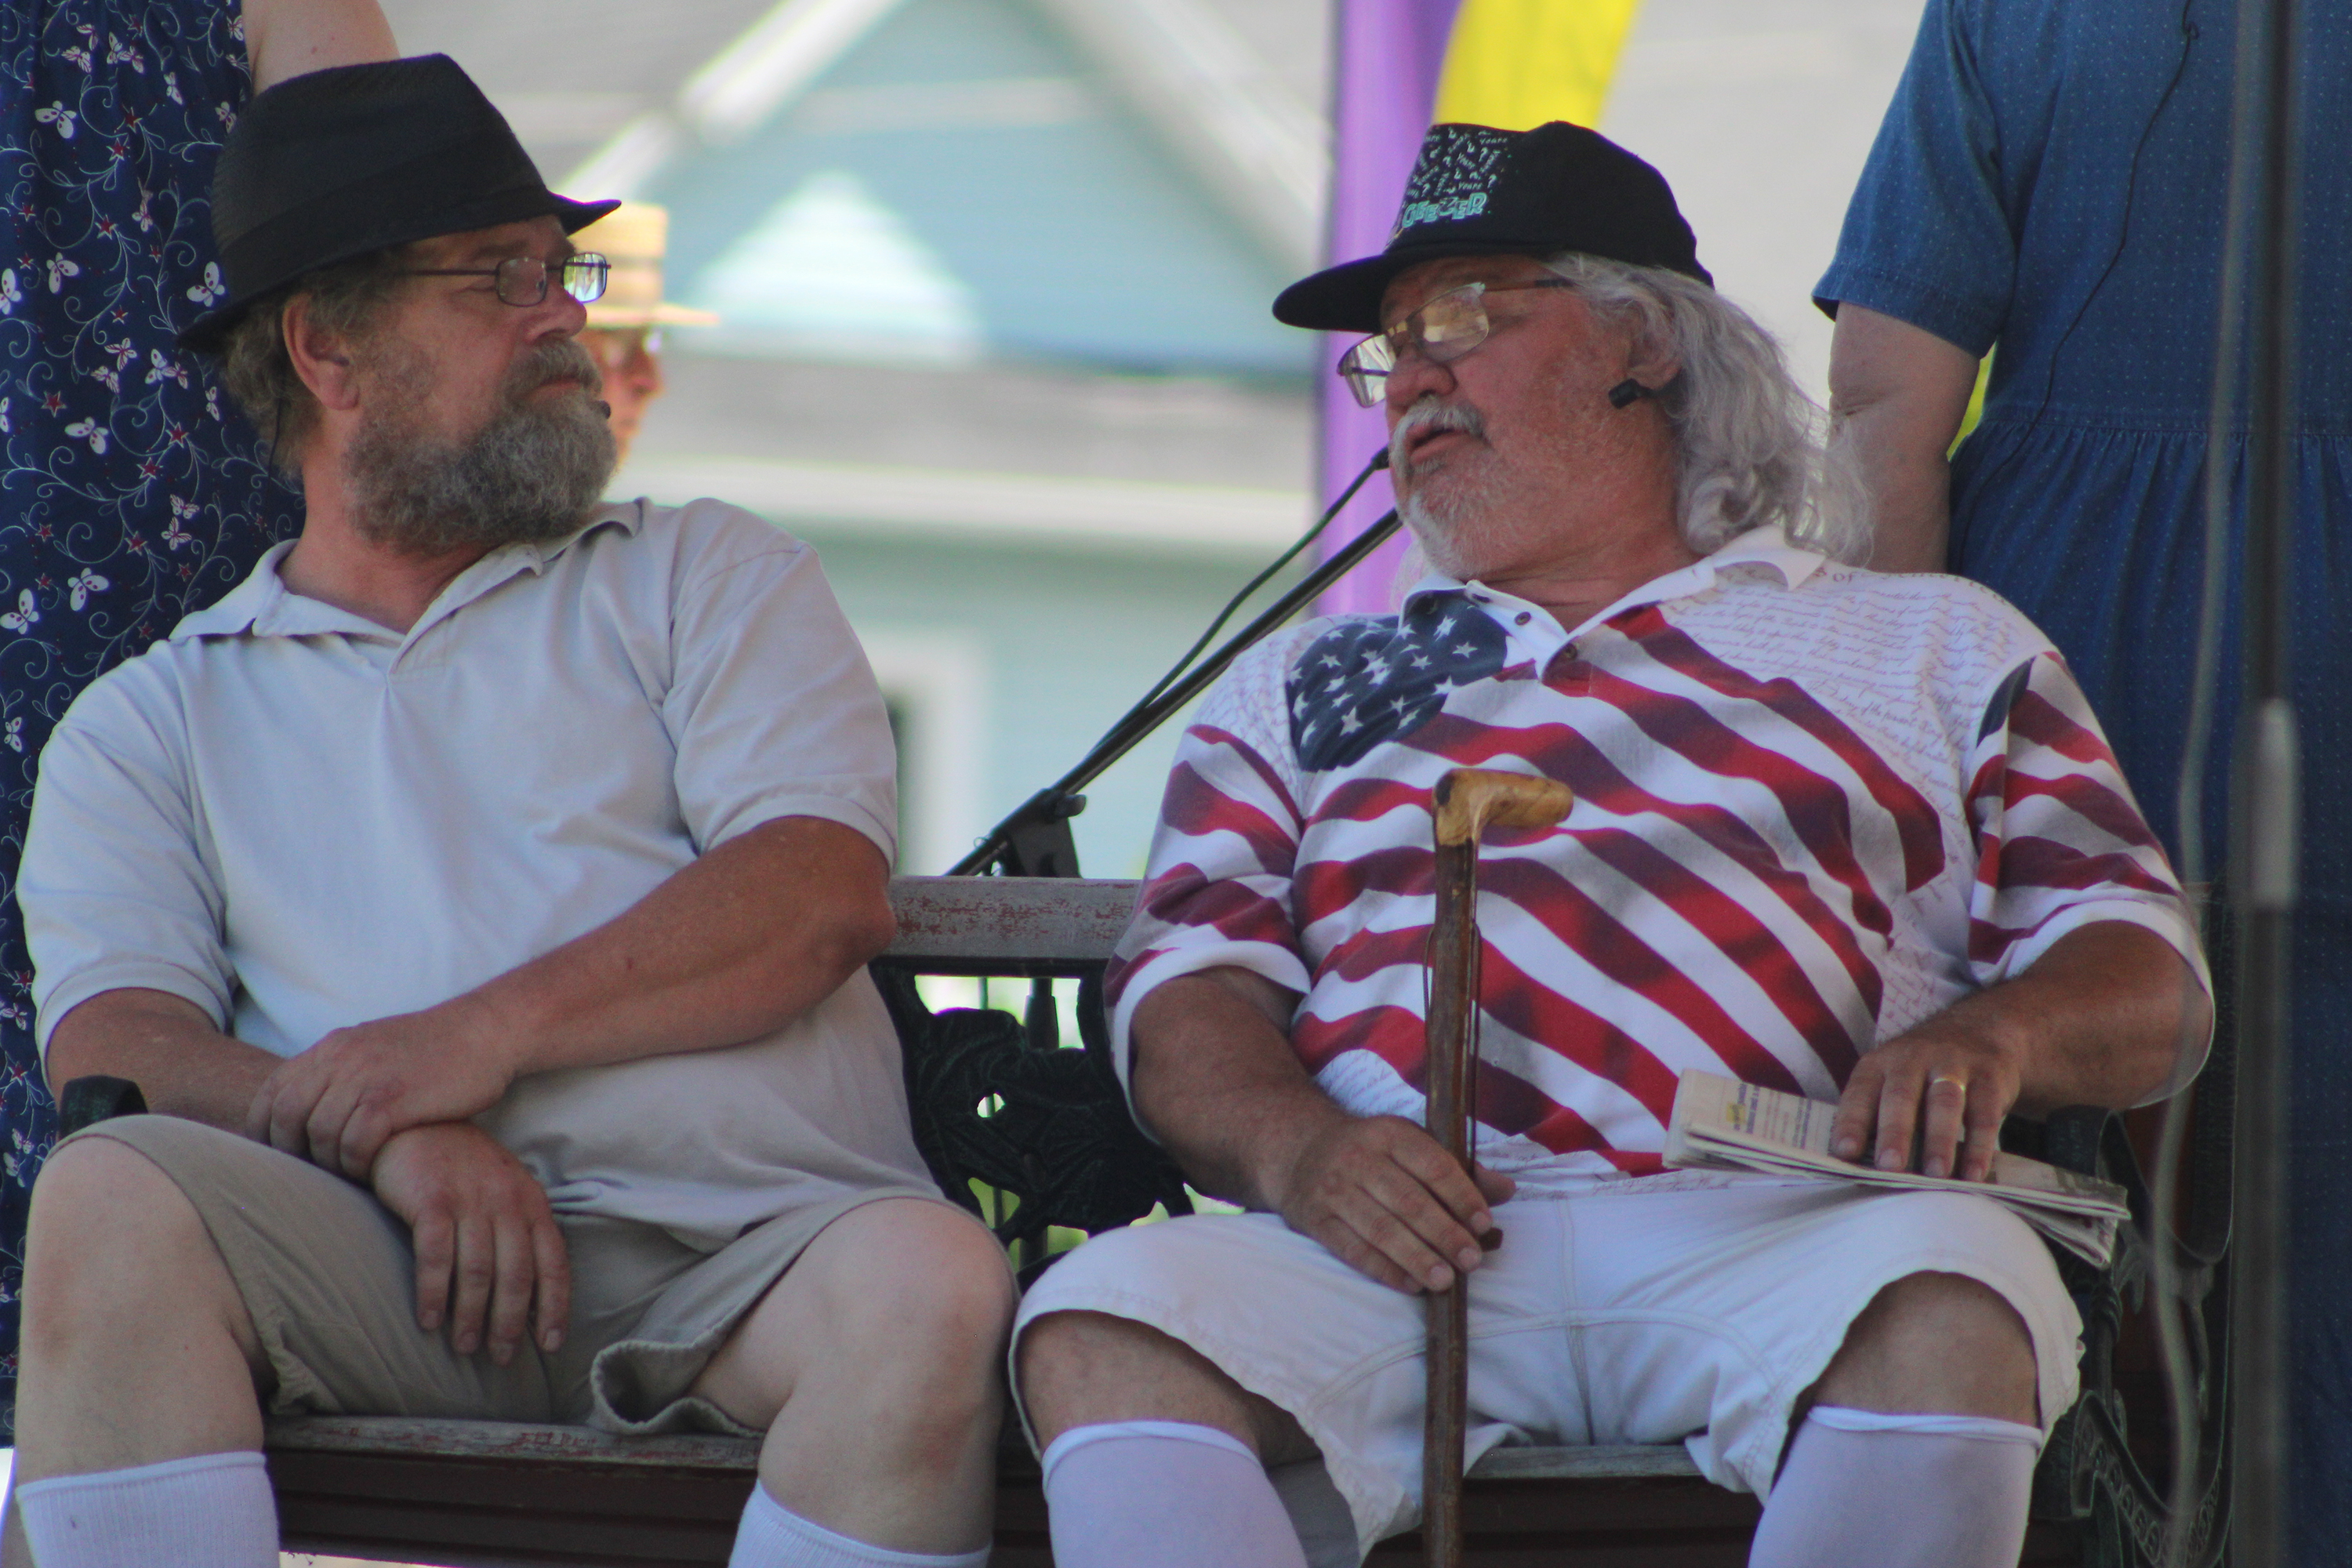 """Brothers Floyd and Henry, played by Dave Hackbarth, left, and Ralph Beversdorf, reminisce about their late wives in """"The Geezers,"""" which is part of the play """"Characters"""" written by Don Everts. The scene was part of Arts in the Park, held June 12 at Franklin Park in Shawano. The event was put on by the Shawano County Arts Council and its subsidiaries, Box in the Wood Theatre Guild and the Shawano County Folk Music Festival.<br />(Lee Pulaski 